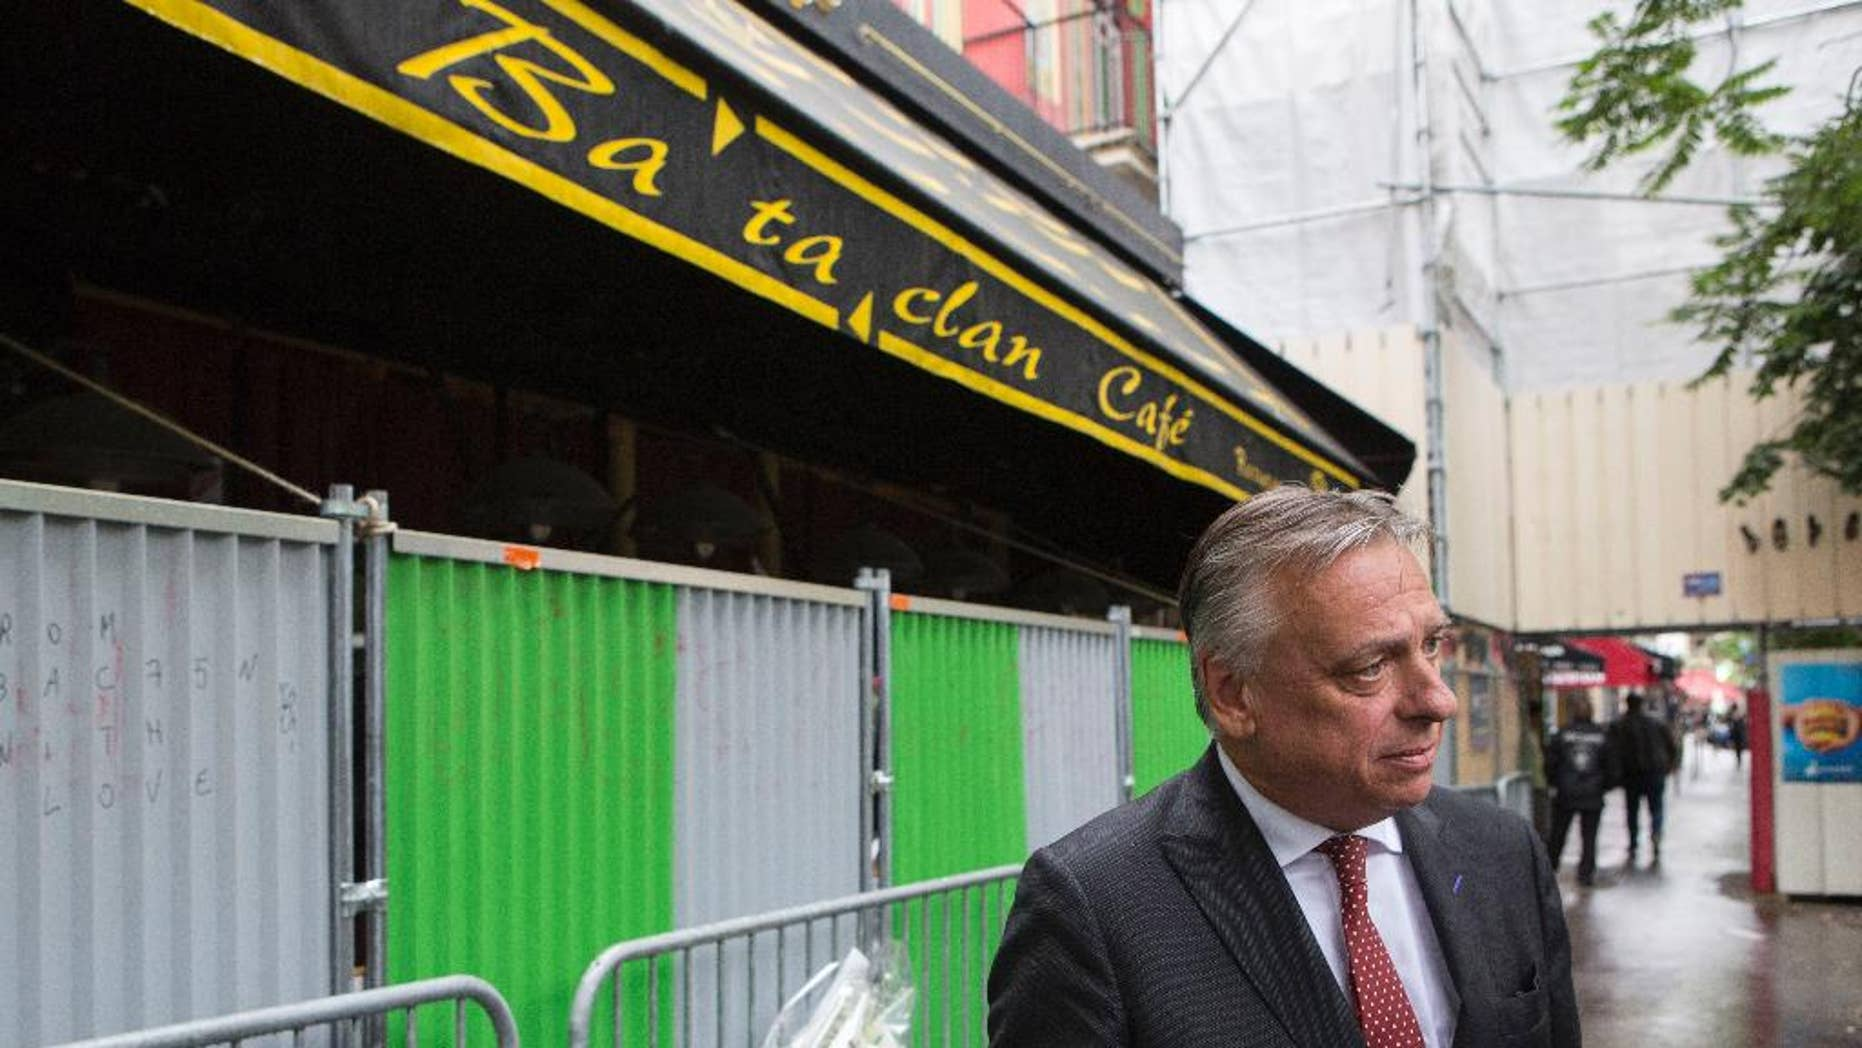 Patrick Dewael, head of the Belgian commission of inquiry, answers the media outside the Bataclan concert hall in Paris, Monday, June 20, 2016. Belgian lawmakers are joining forces with their French counterparts in examining the Islamic State cell that carried out deadly attacks in both Brussels and Paris. (AP Photo/Kamil Zihnioglu)